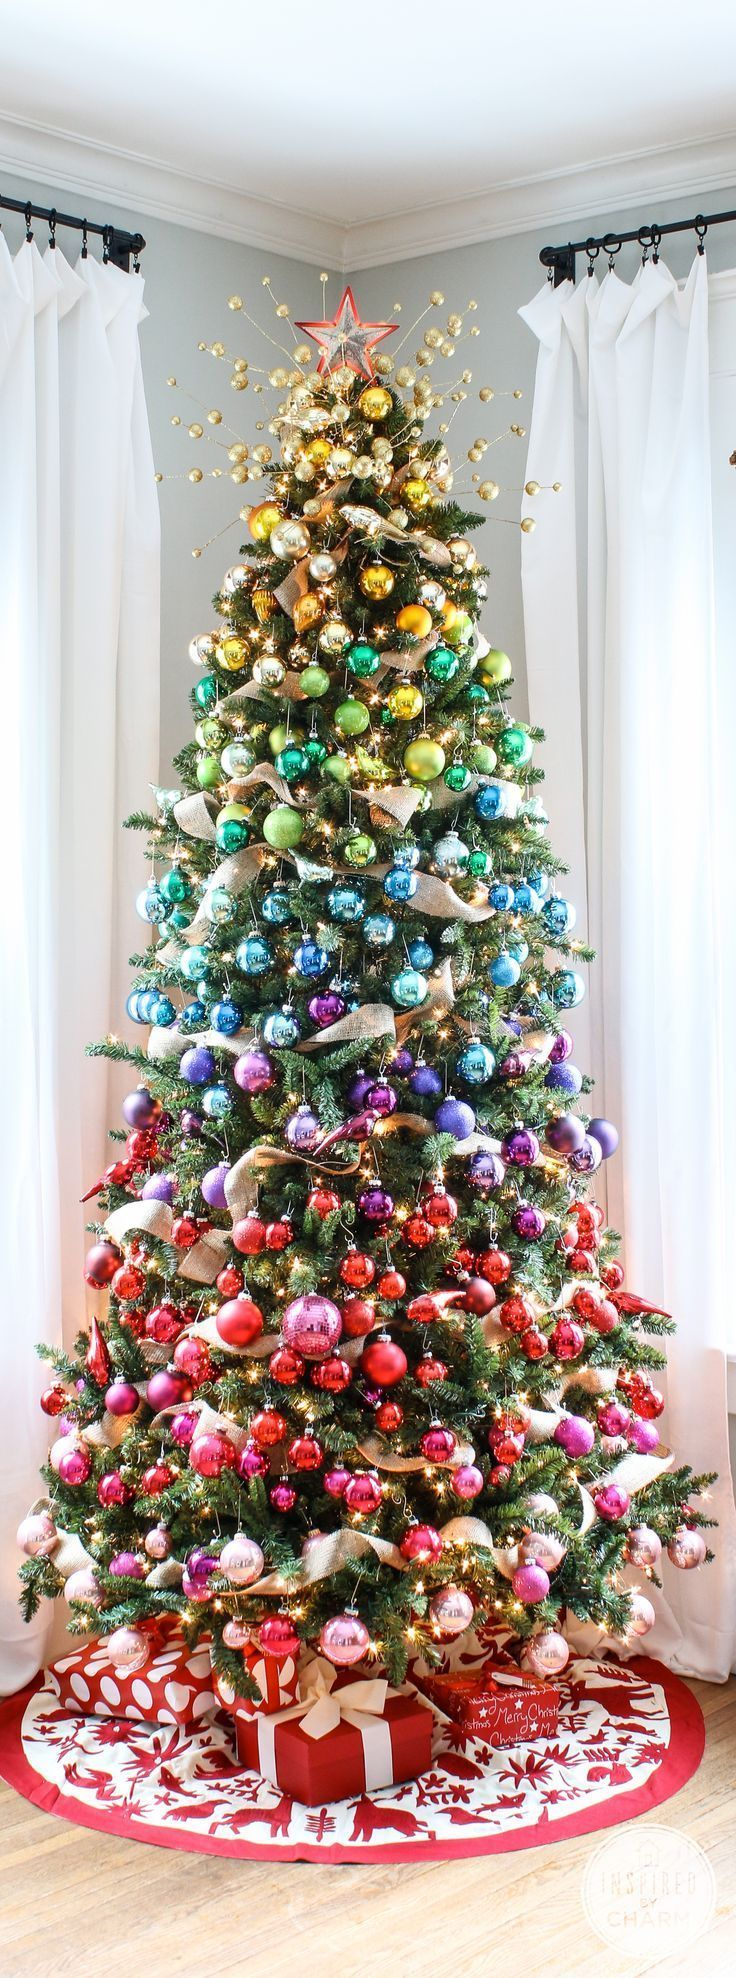 A Colorful Christmas Tree Idea! #gradient #christm…